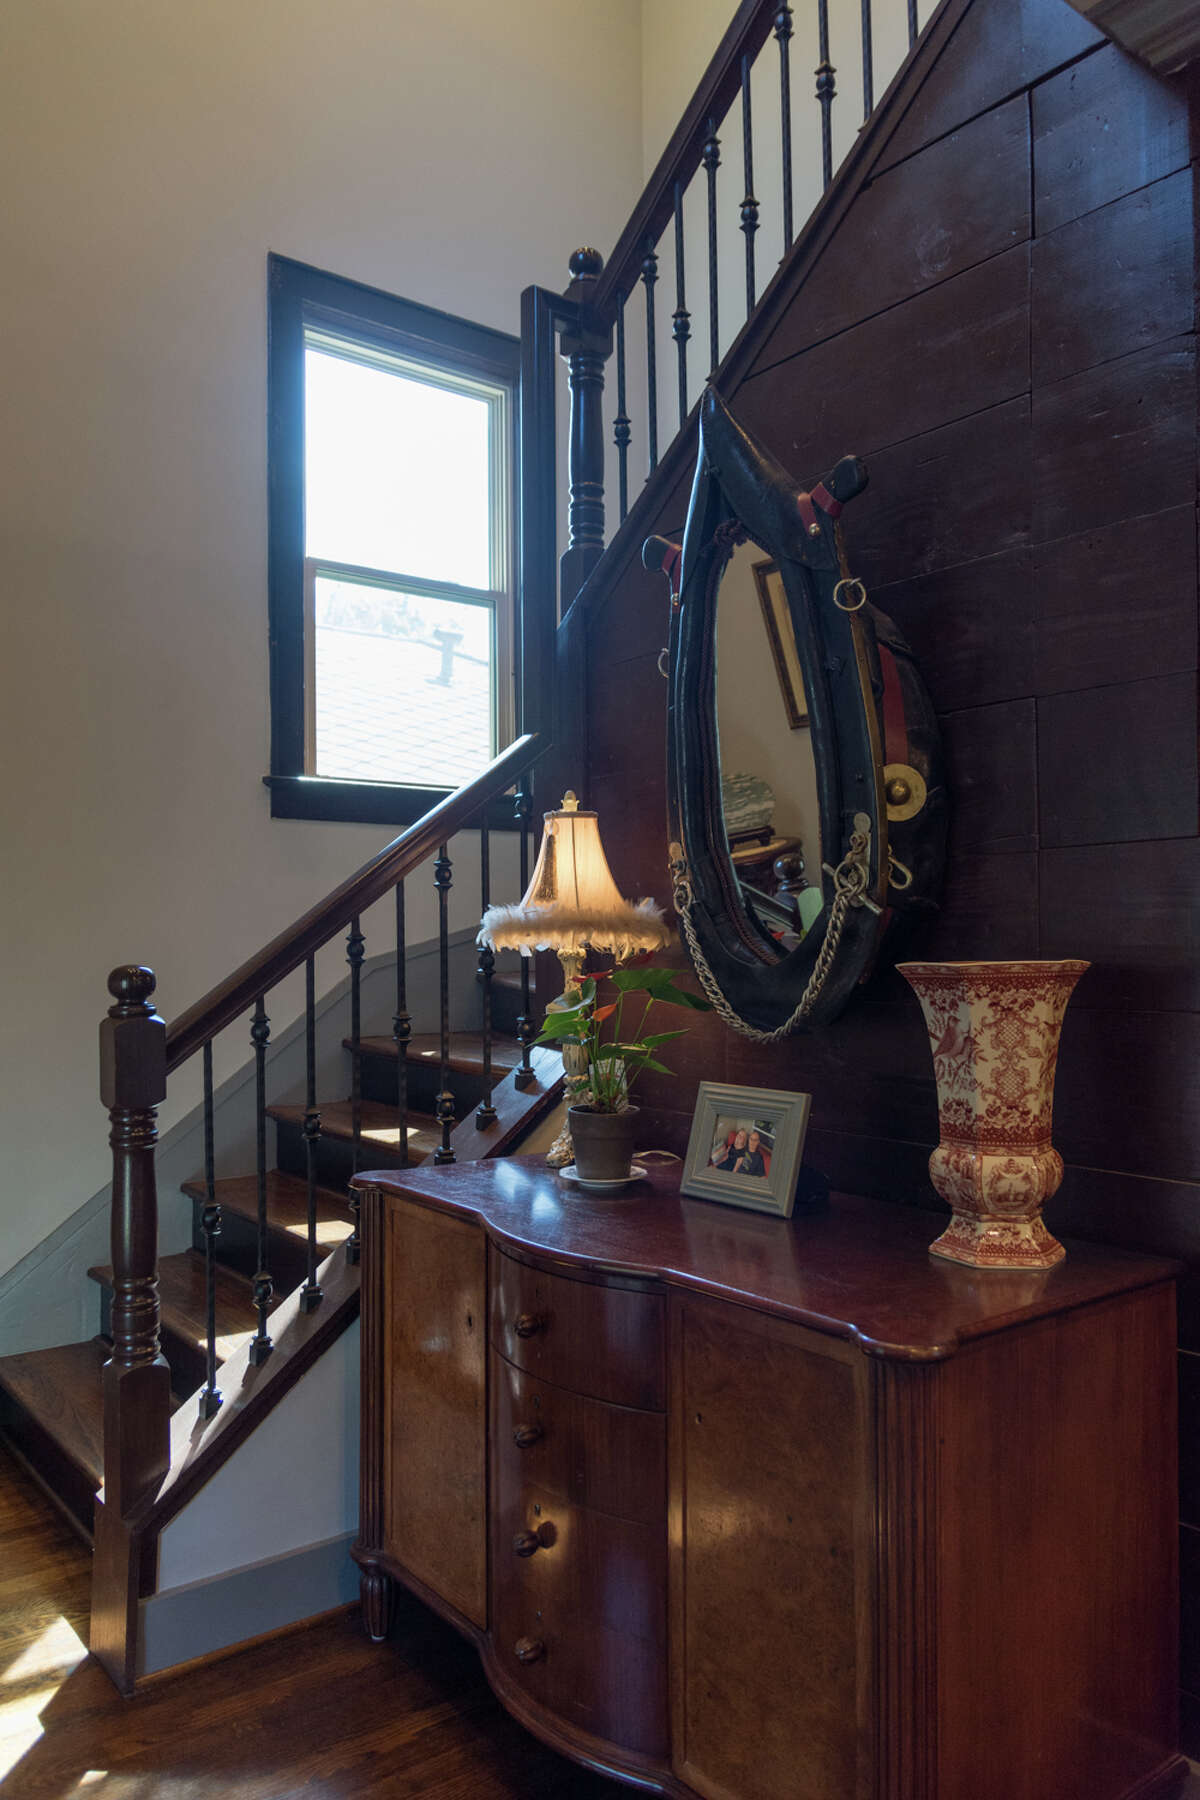 Eastwood: This Pease Street home will be on the 2016 Eastwood Home Tour on Oct. 15-16.